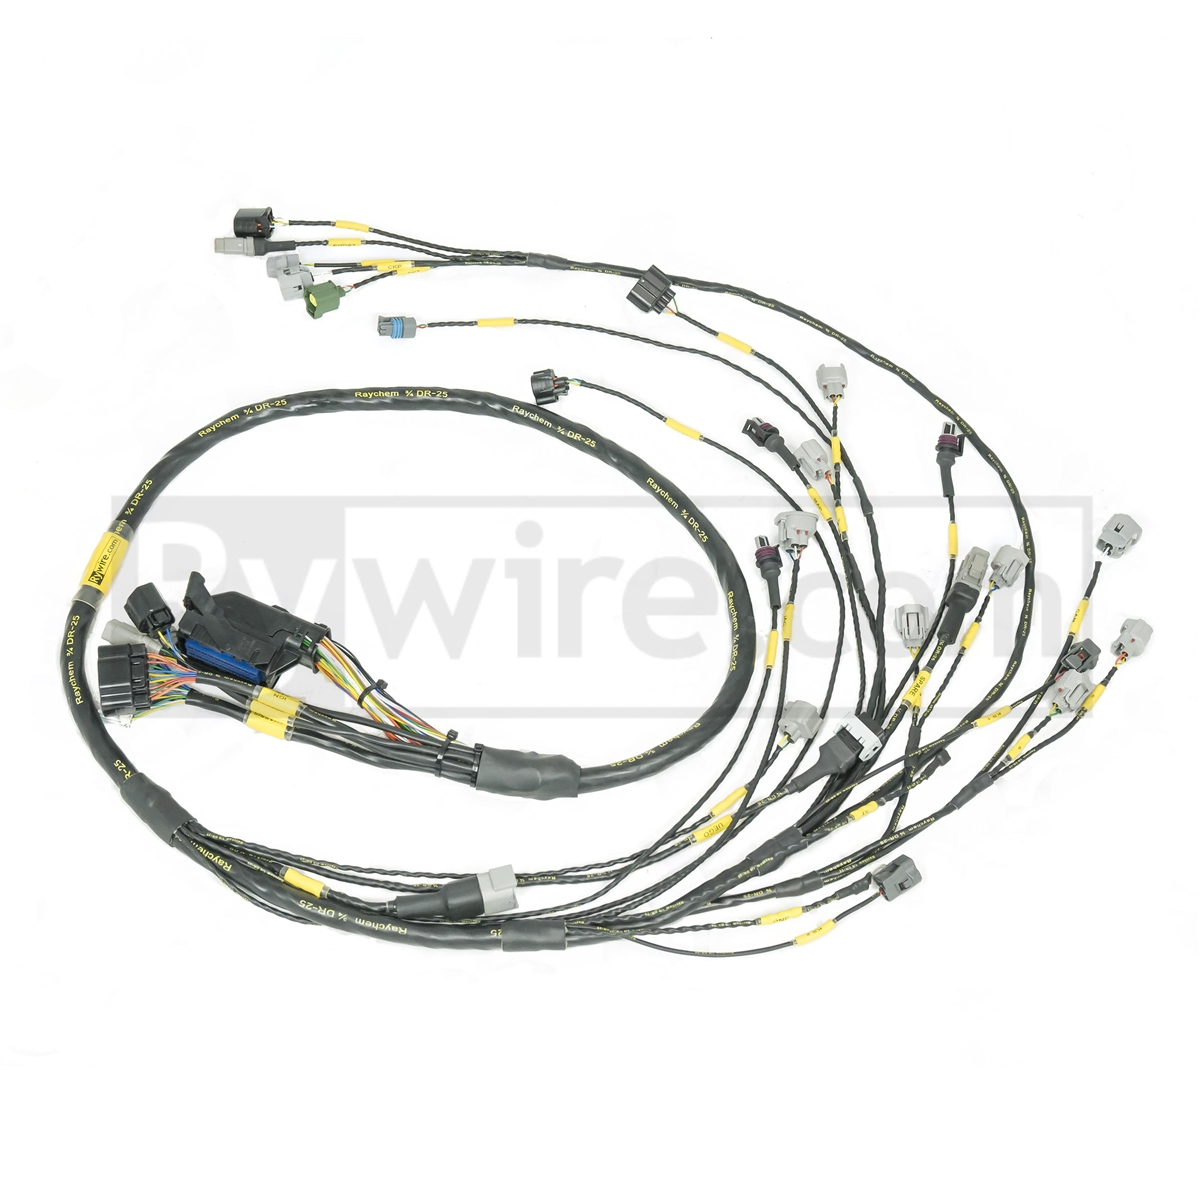 Infinity Wiring Harness Library Specialties Shipping